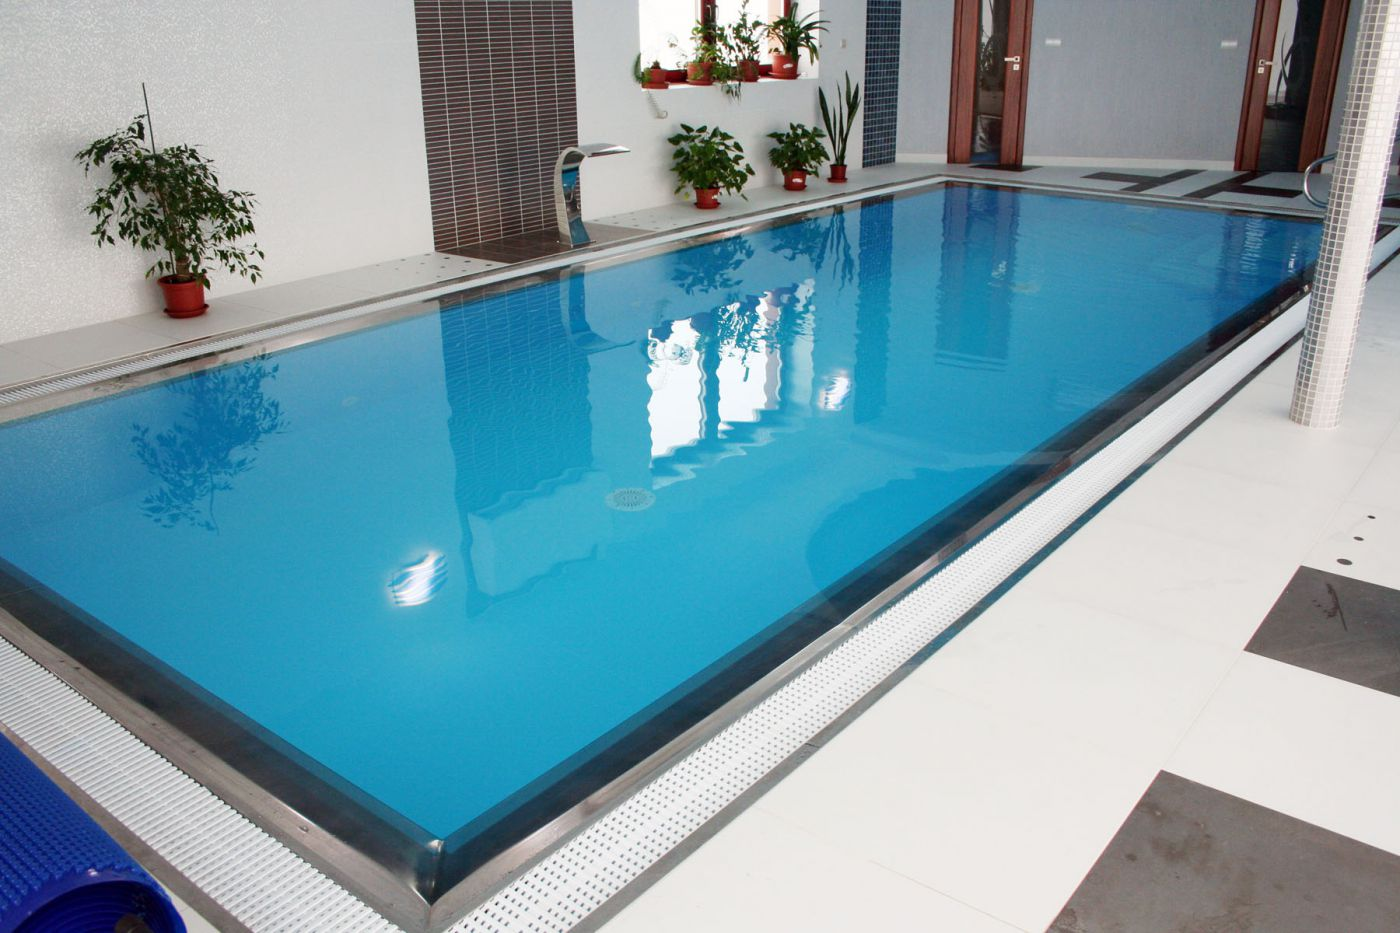 The Overflow Drain Directly Connects To Pool Wall